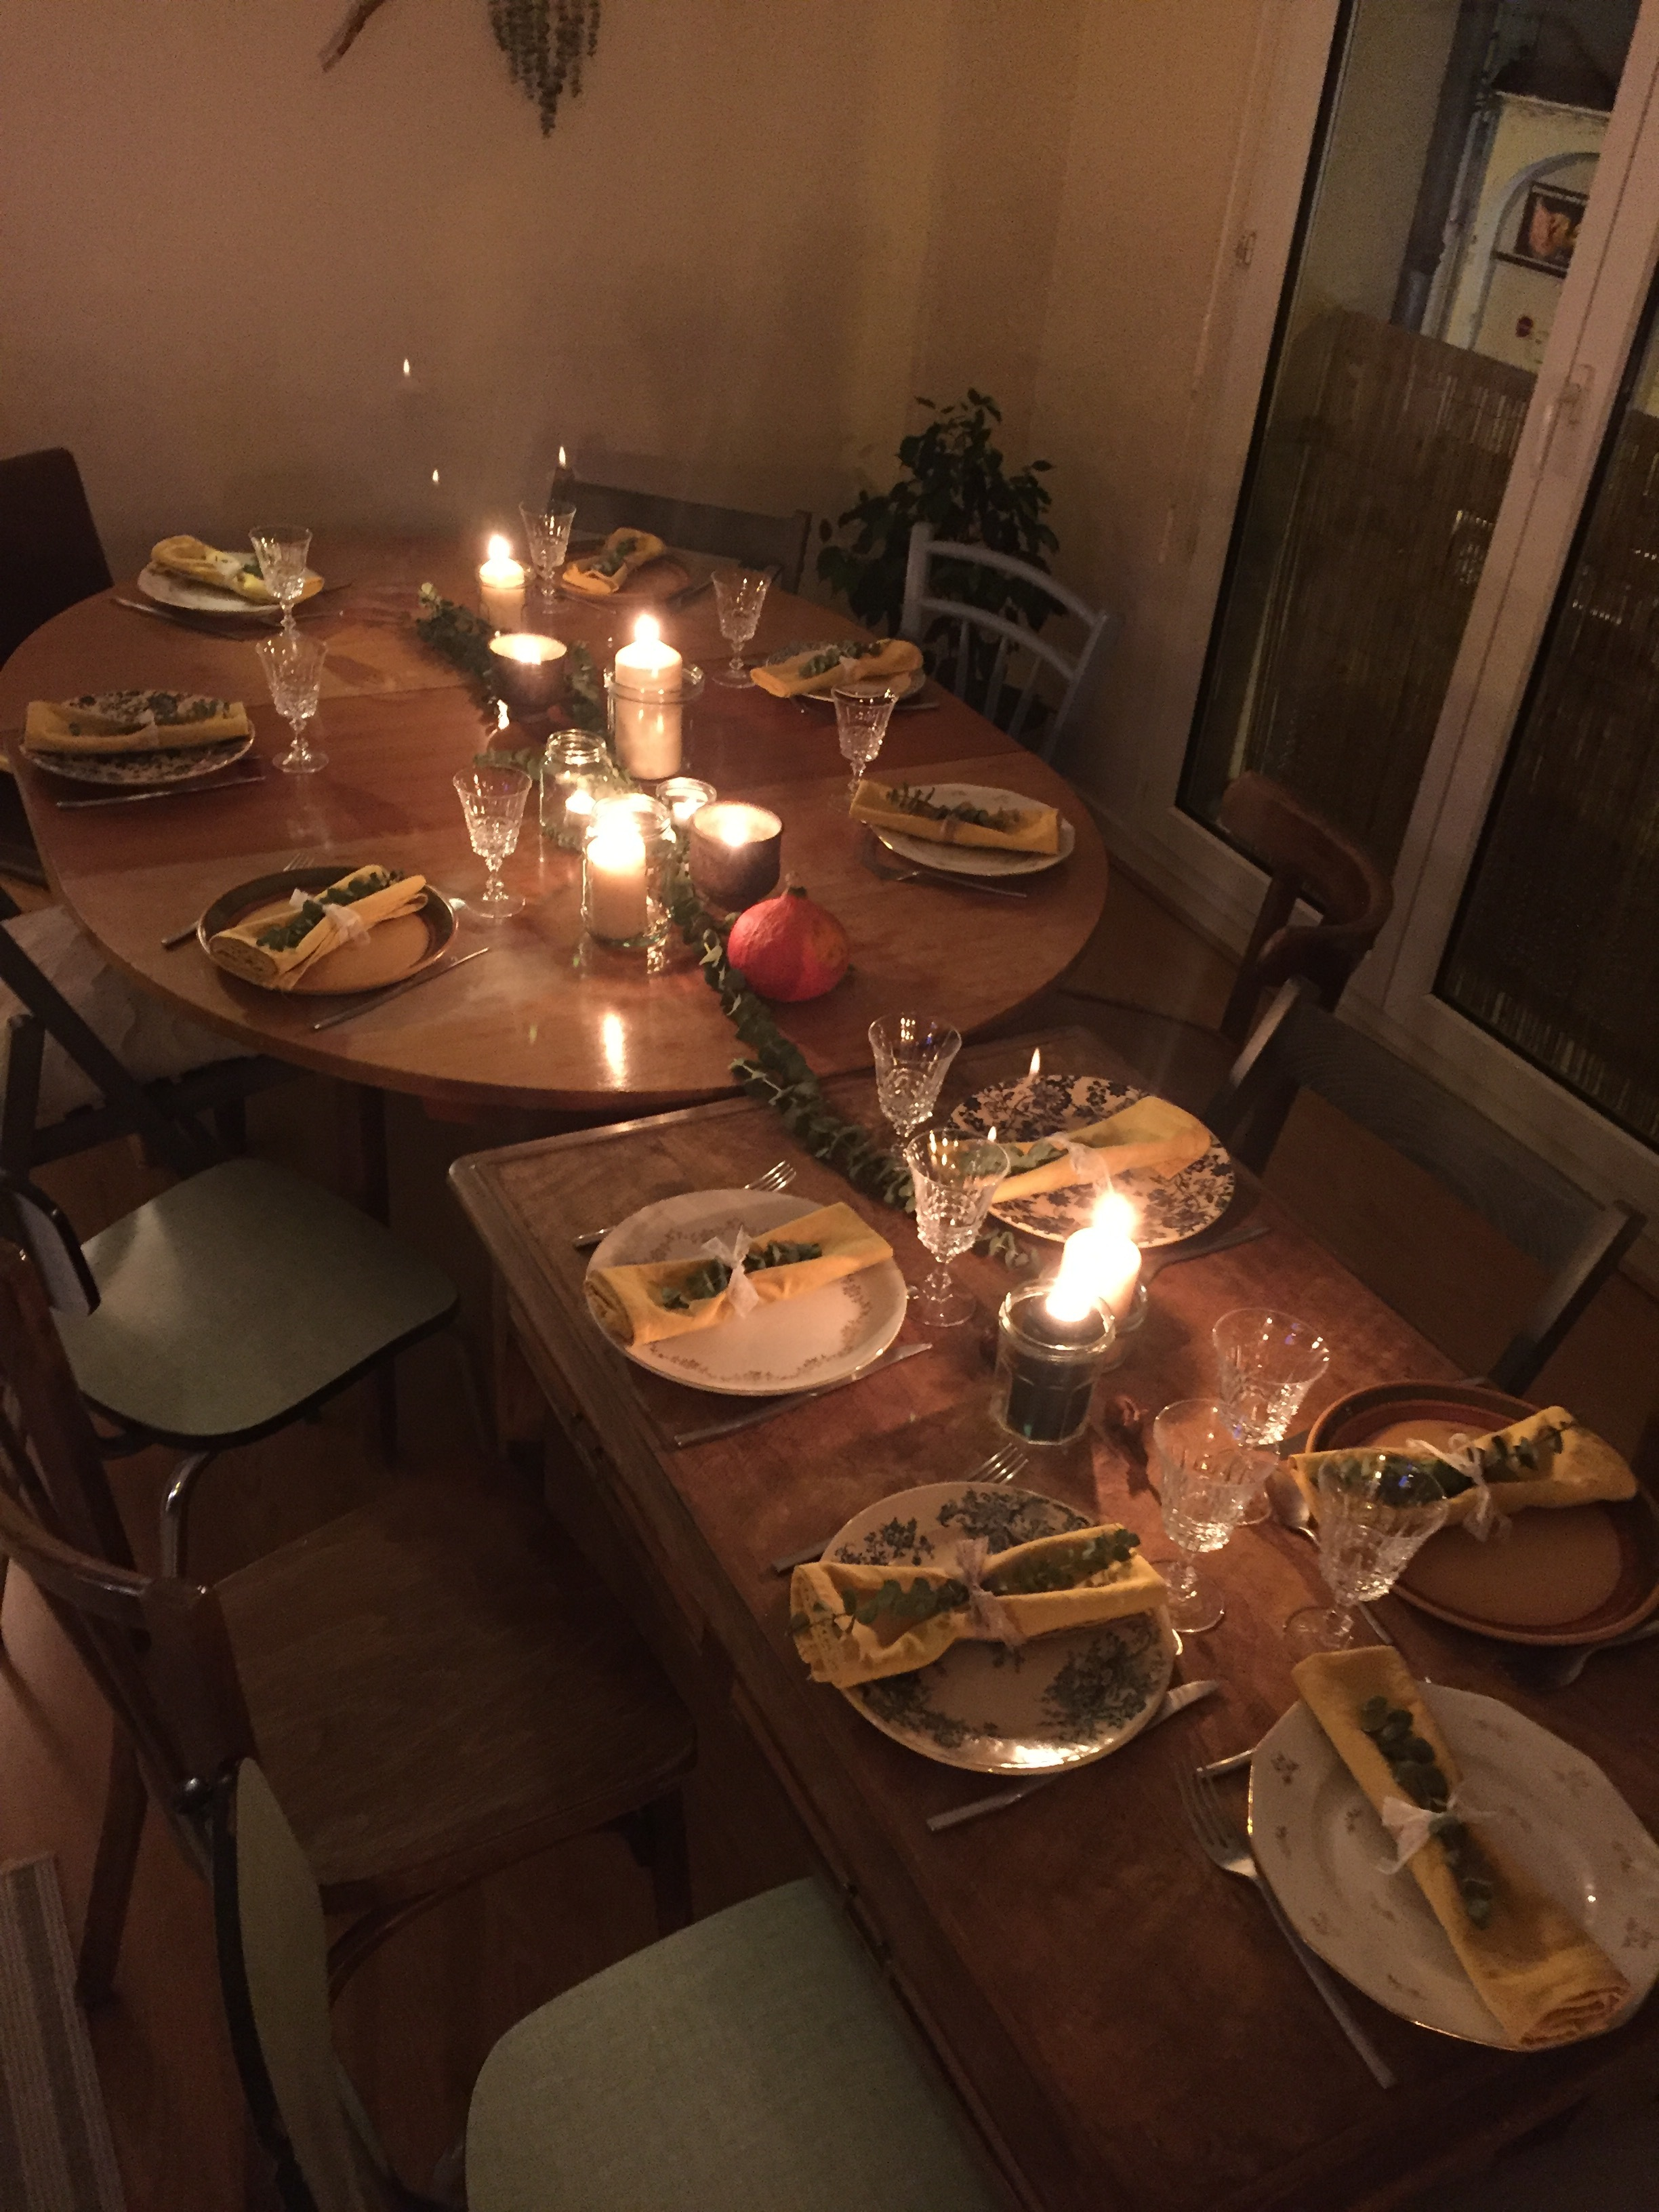 A beautifully set thanksgiving dinner table!